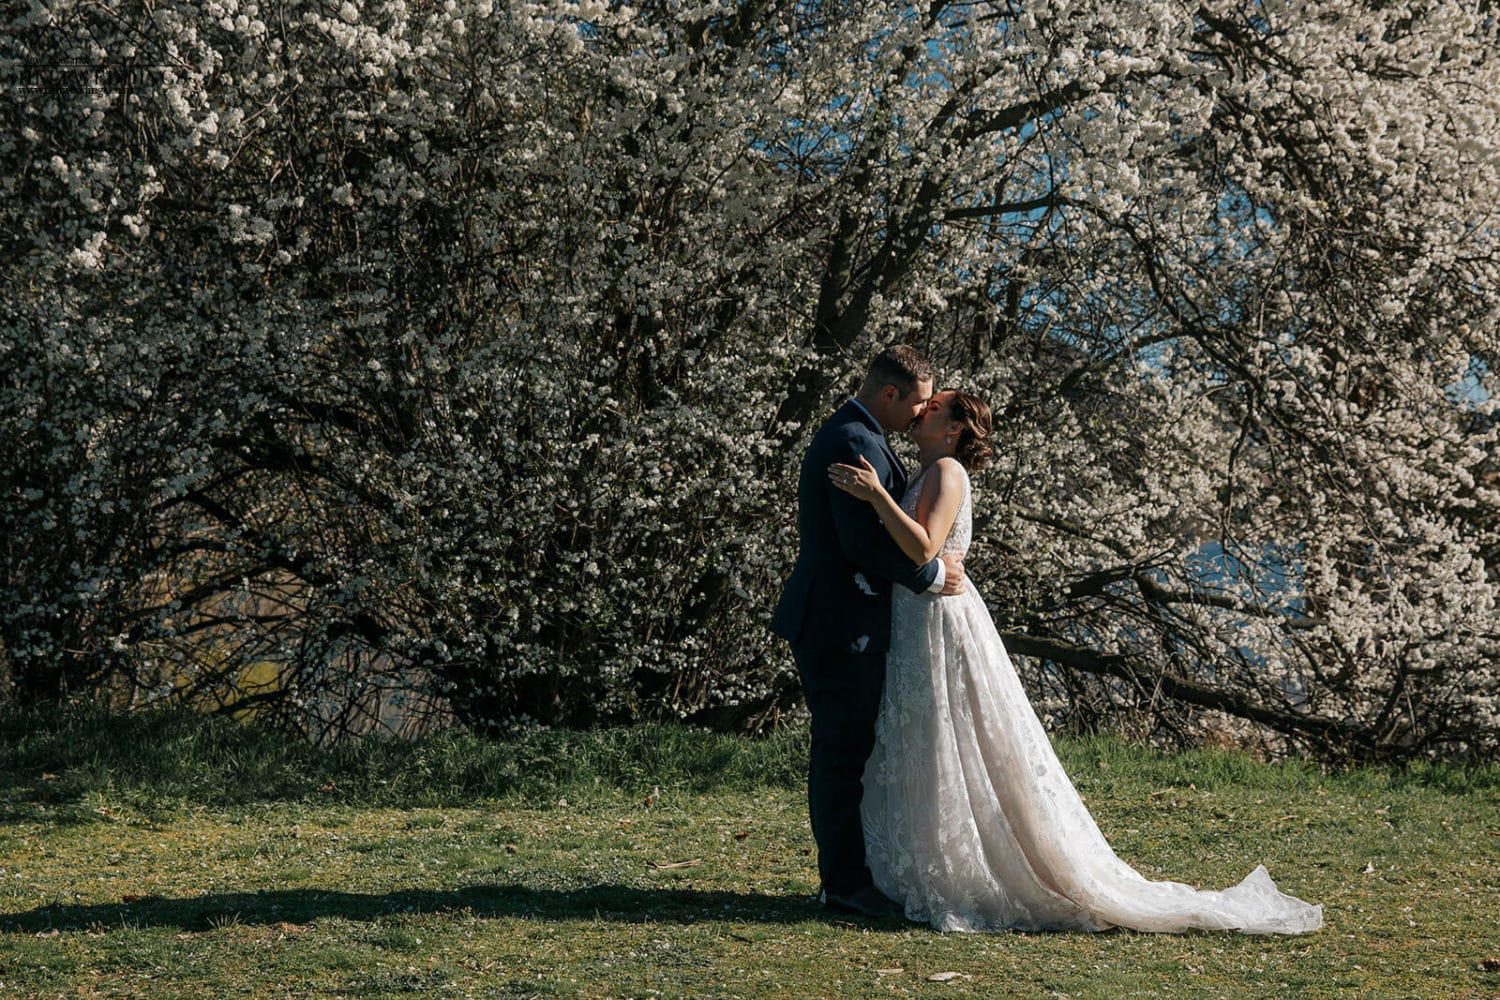 Bride and groom among the blossoms in Queenstown